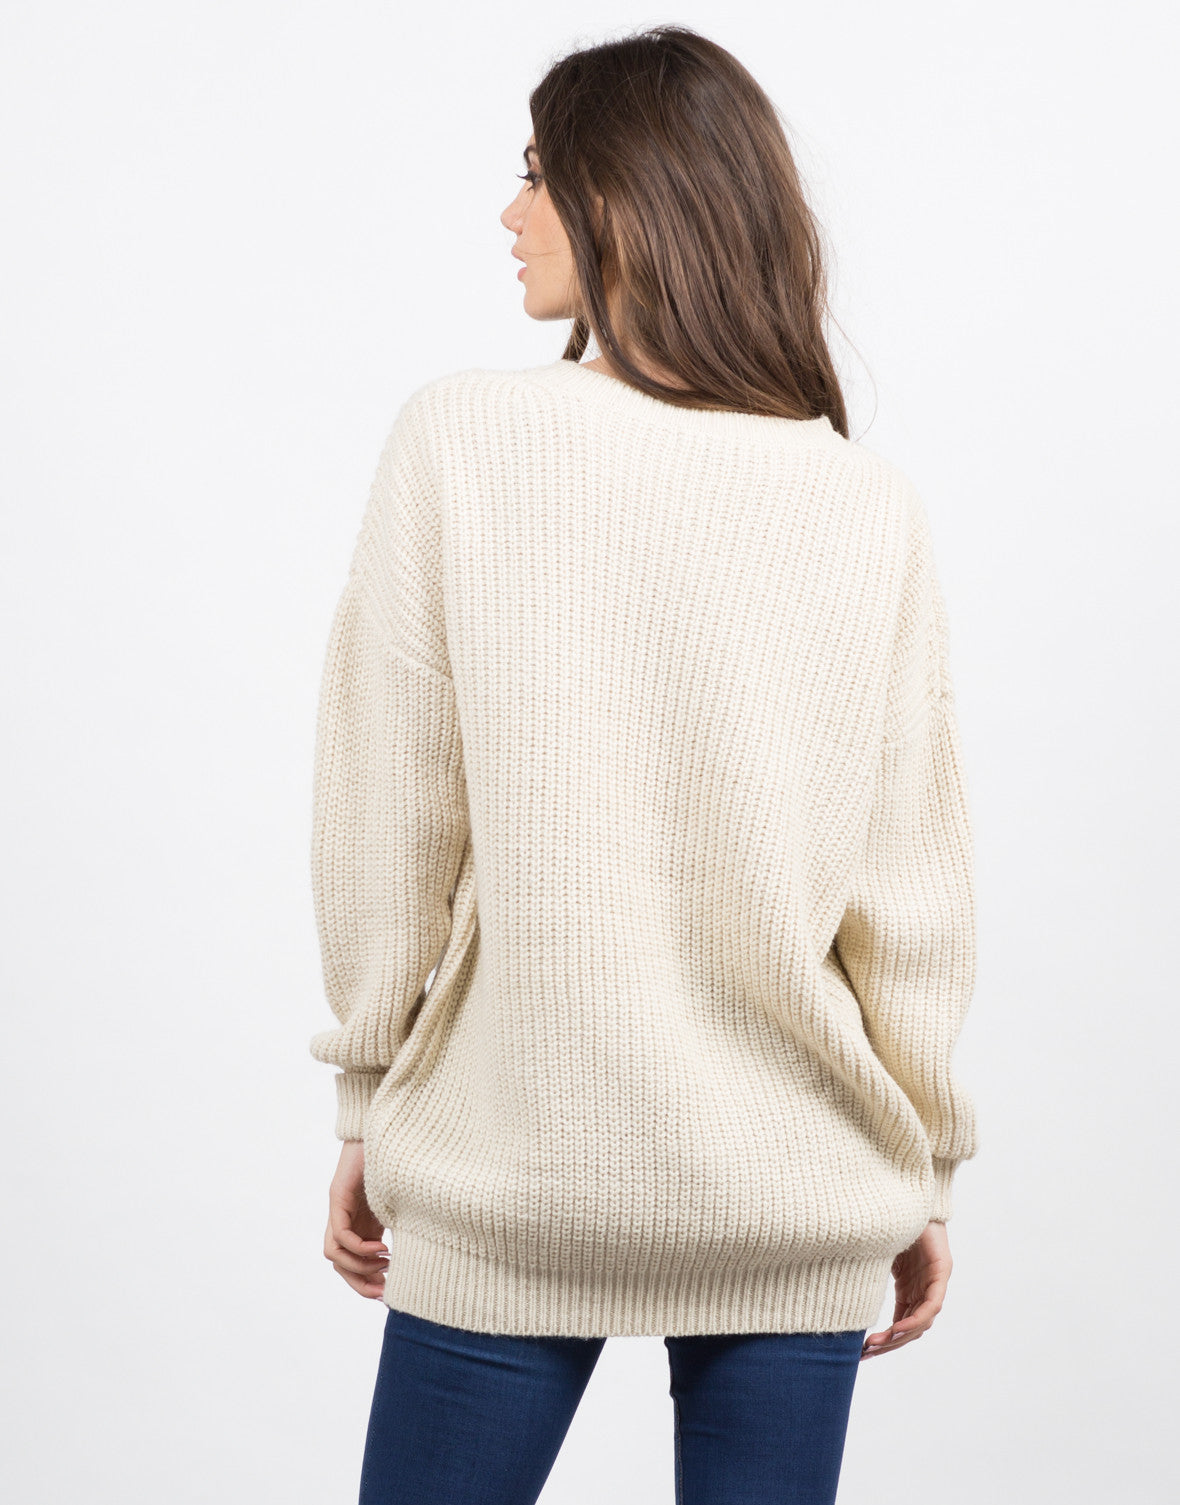 Back View of Chunky Oversized Sweater